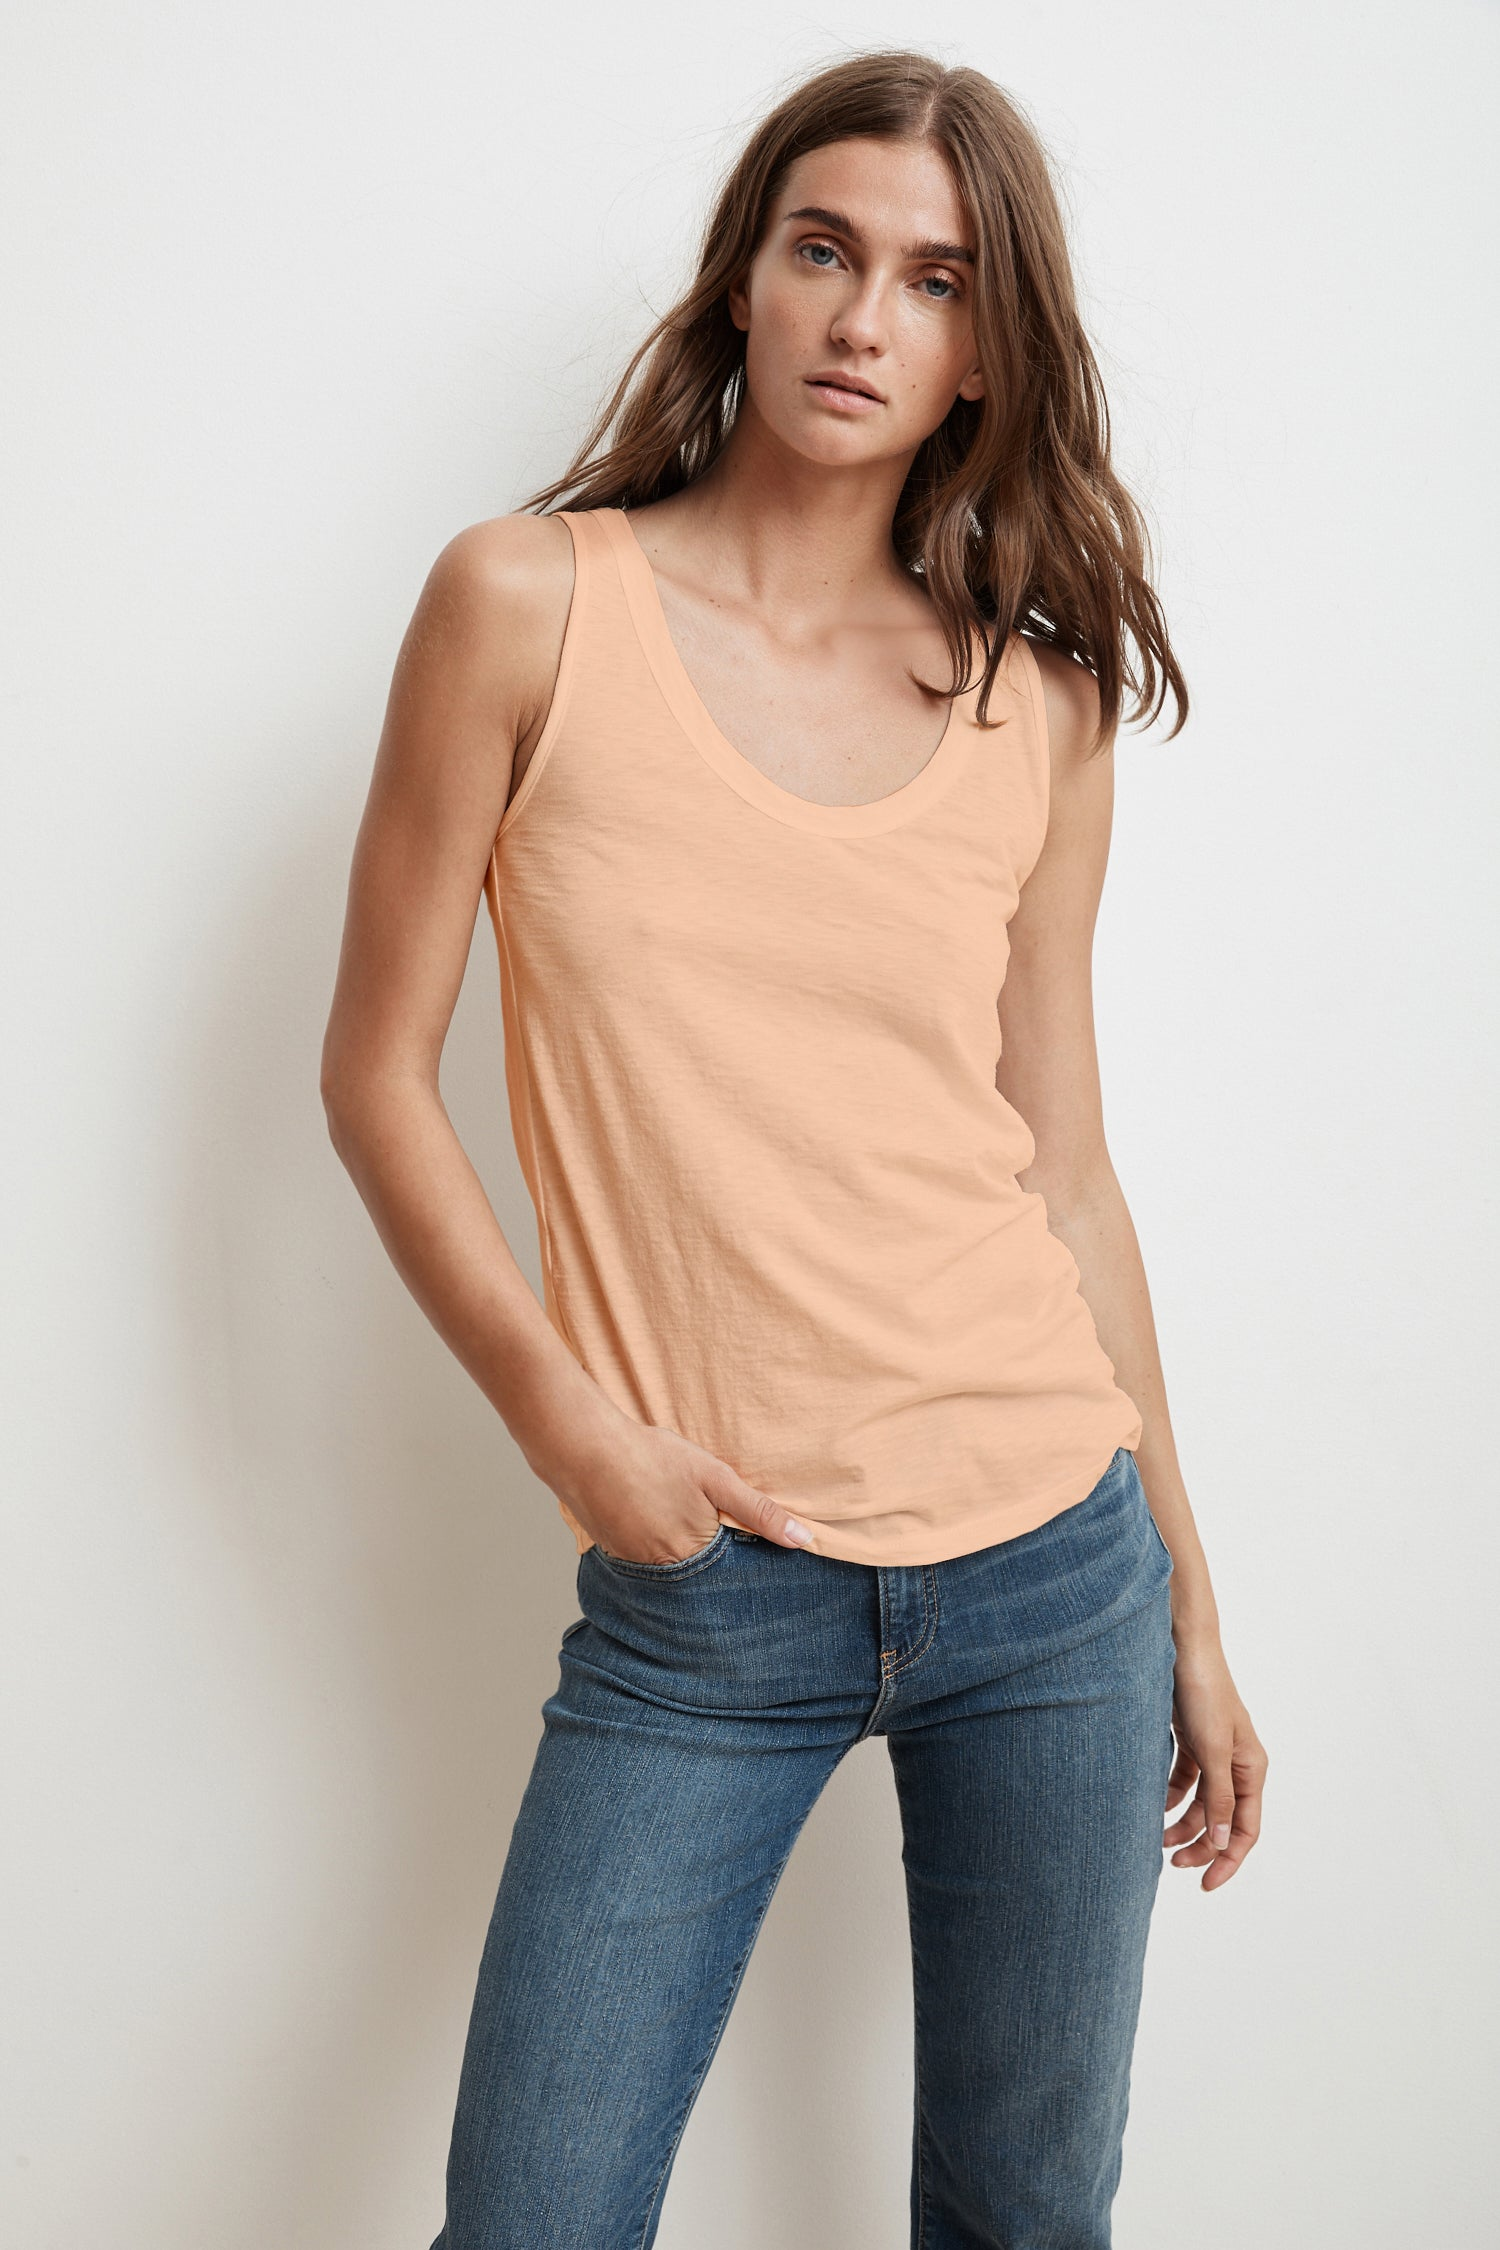 JEN SCOOP NECK TANK TOP IN CRUSH